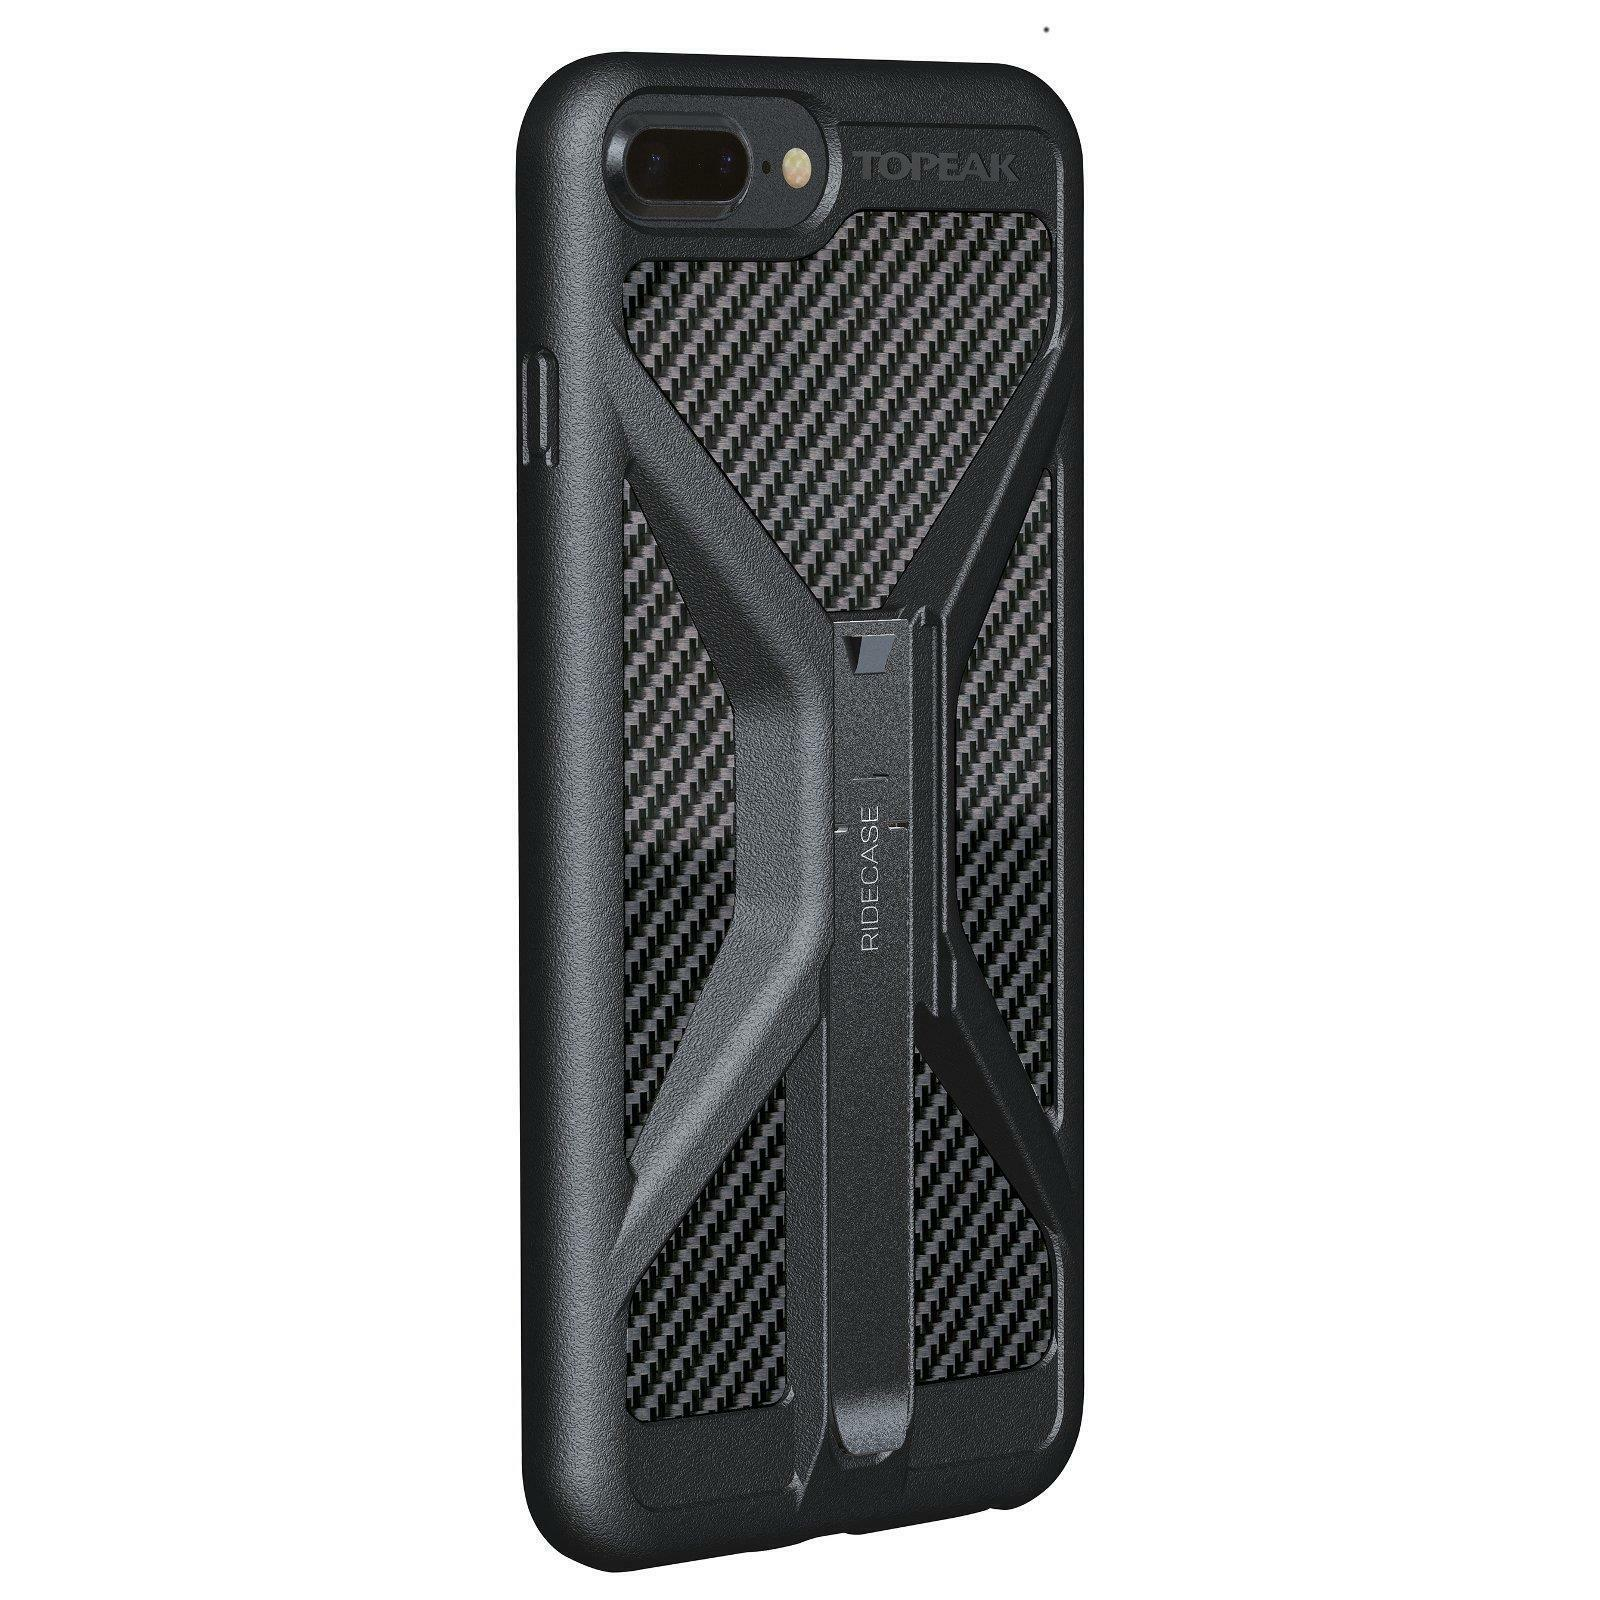 Topeak Ride Case iPhone 6+ 6S+ 7+  8+ Handyhülle Schutzhülle Handyschutz Plus  fast shipping to you